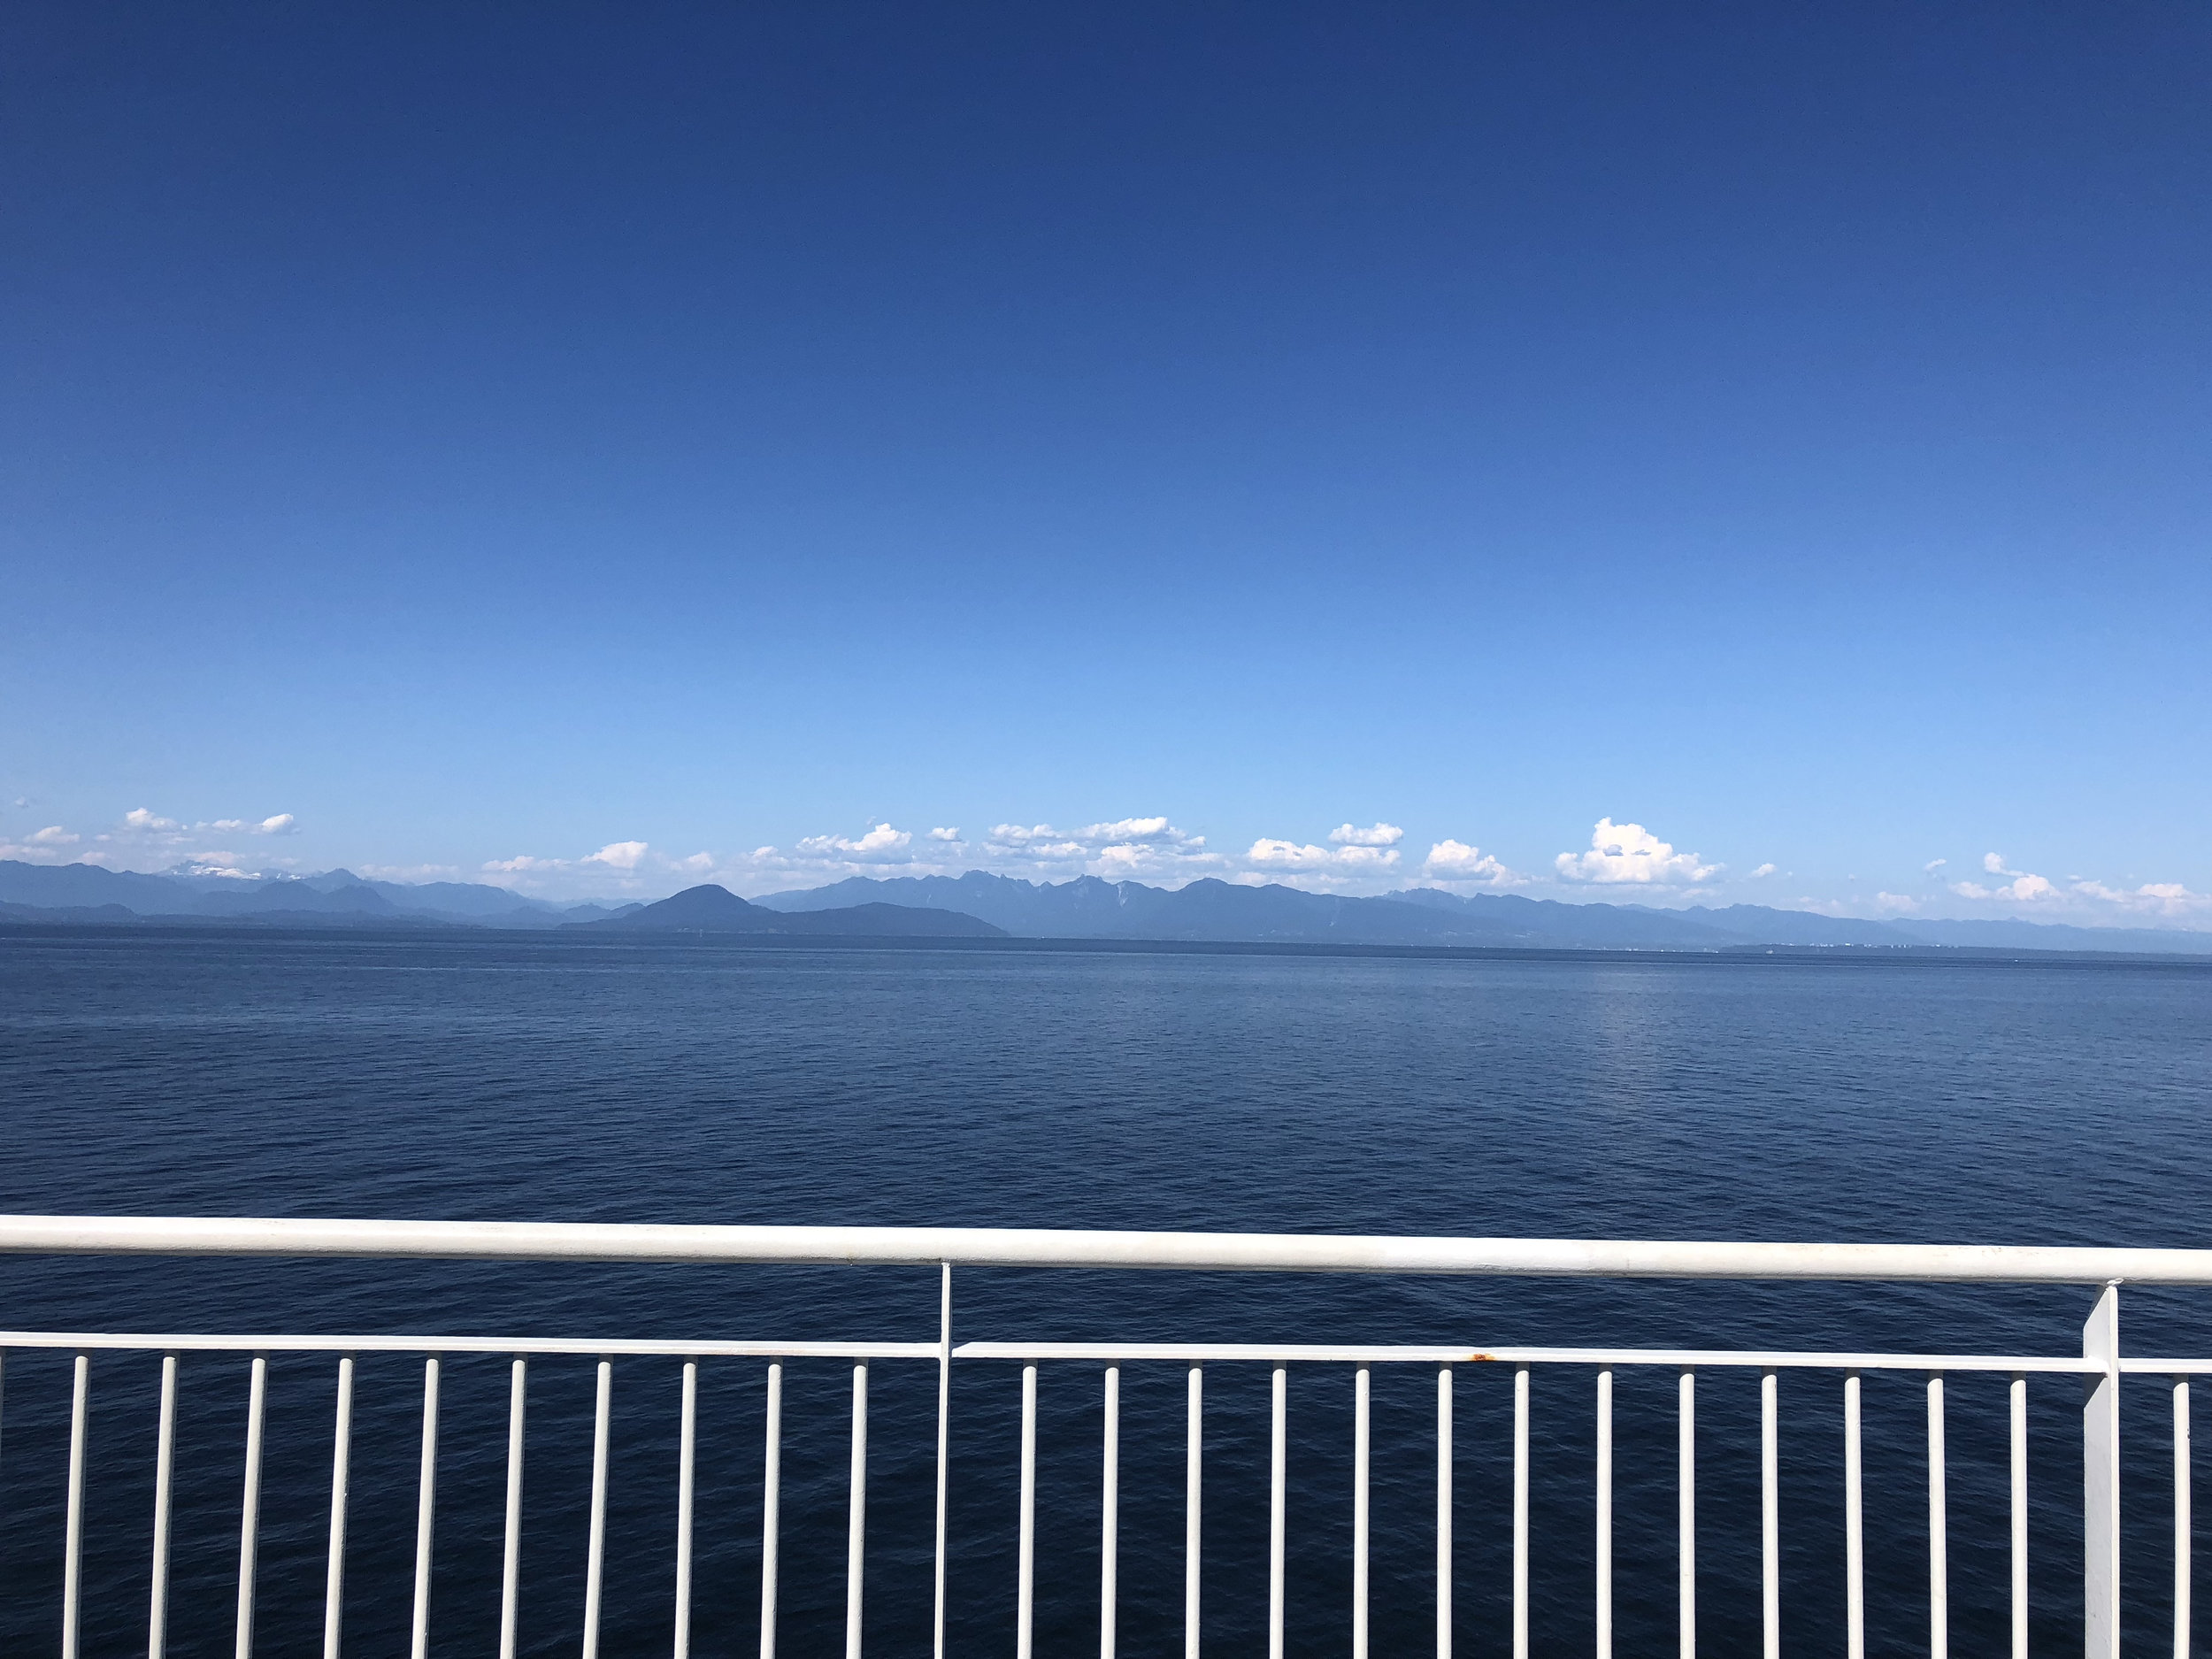 View from ferry back to mainland